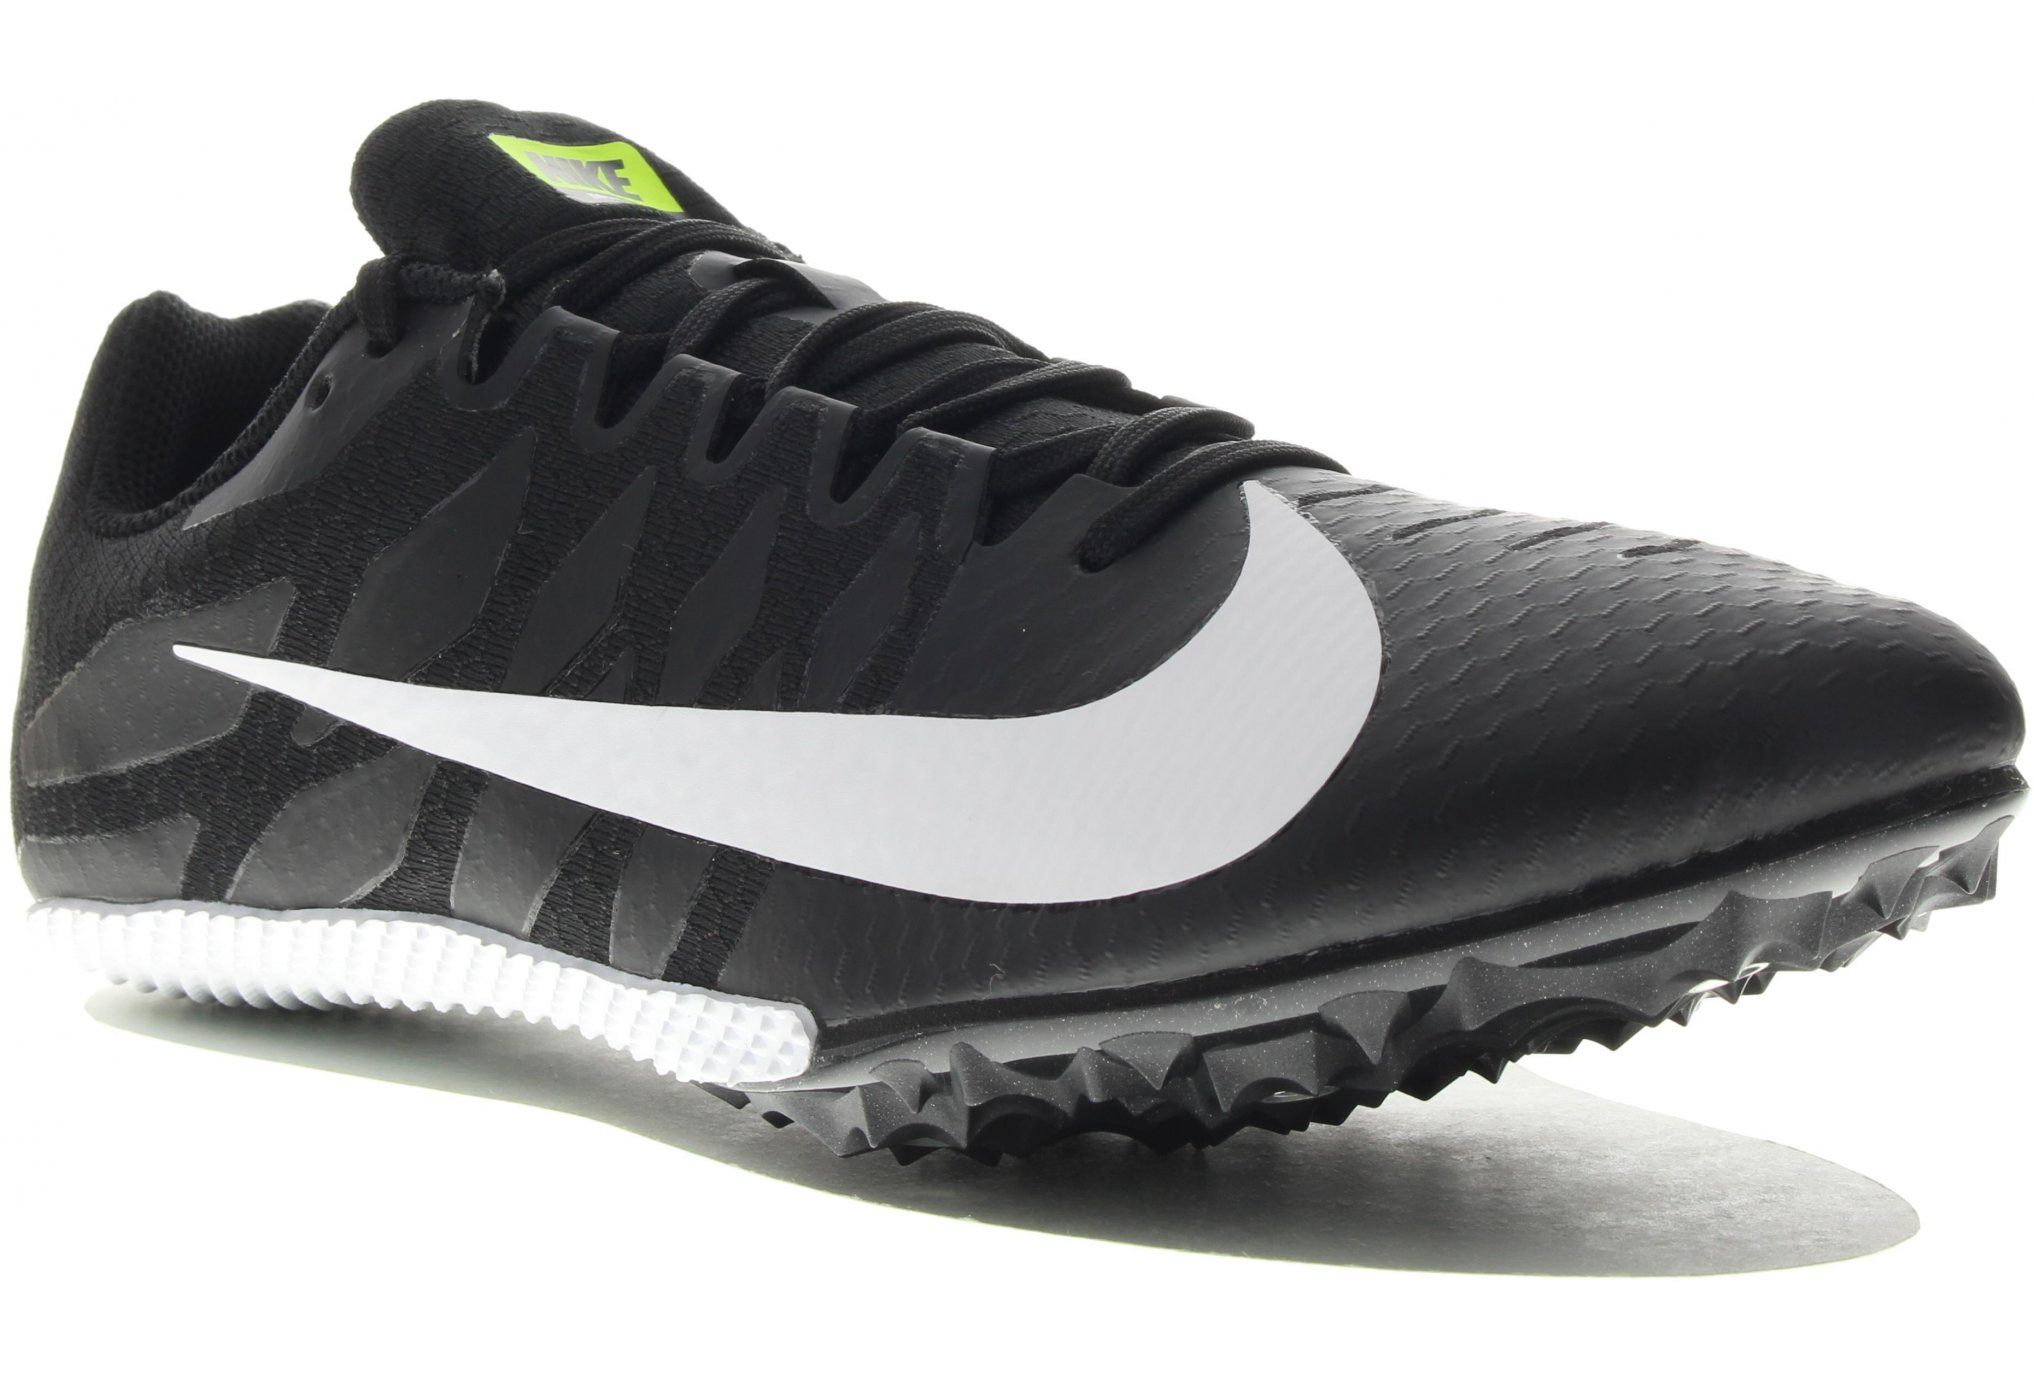 Nike Zoom Rival S 9 W Chaussures running femme